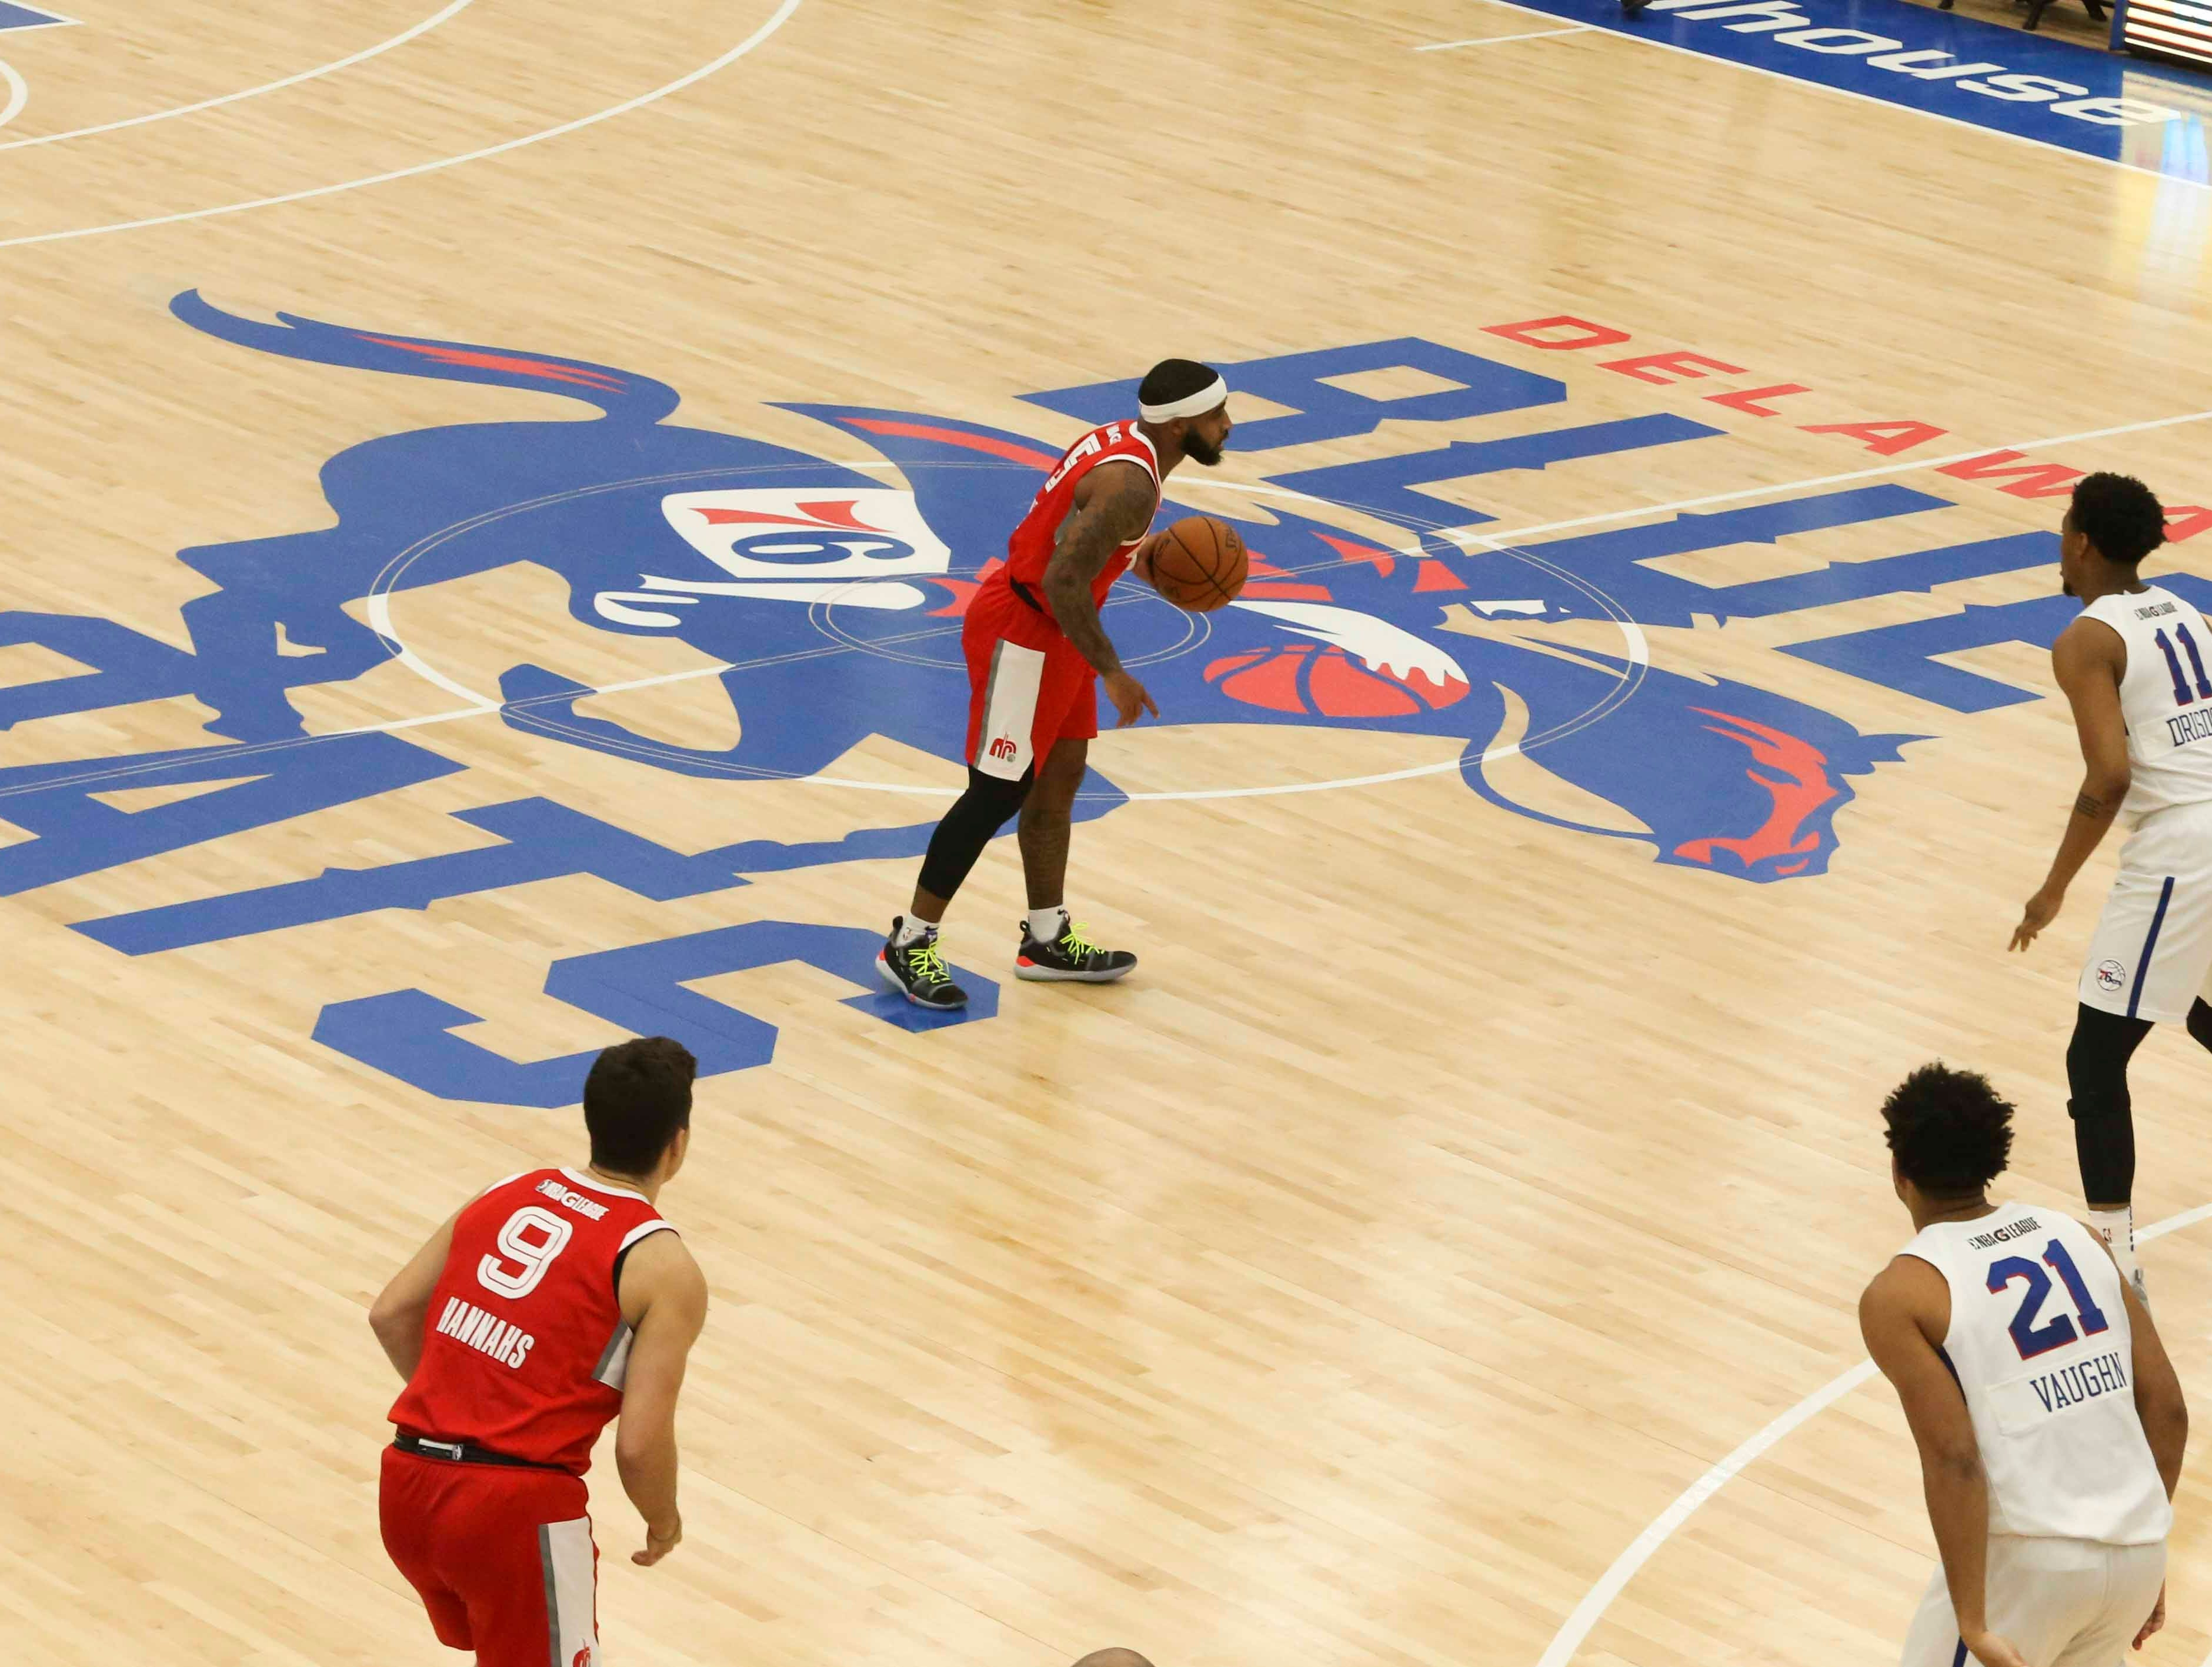 Marcus Keene of the Memphis Hustle brings the ball across the Delaware Blue Coats logo as the NBA G-League opens the 76ers Field House in Wilmington Wednesday.